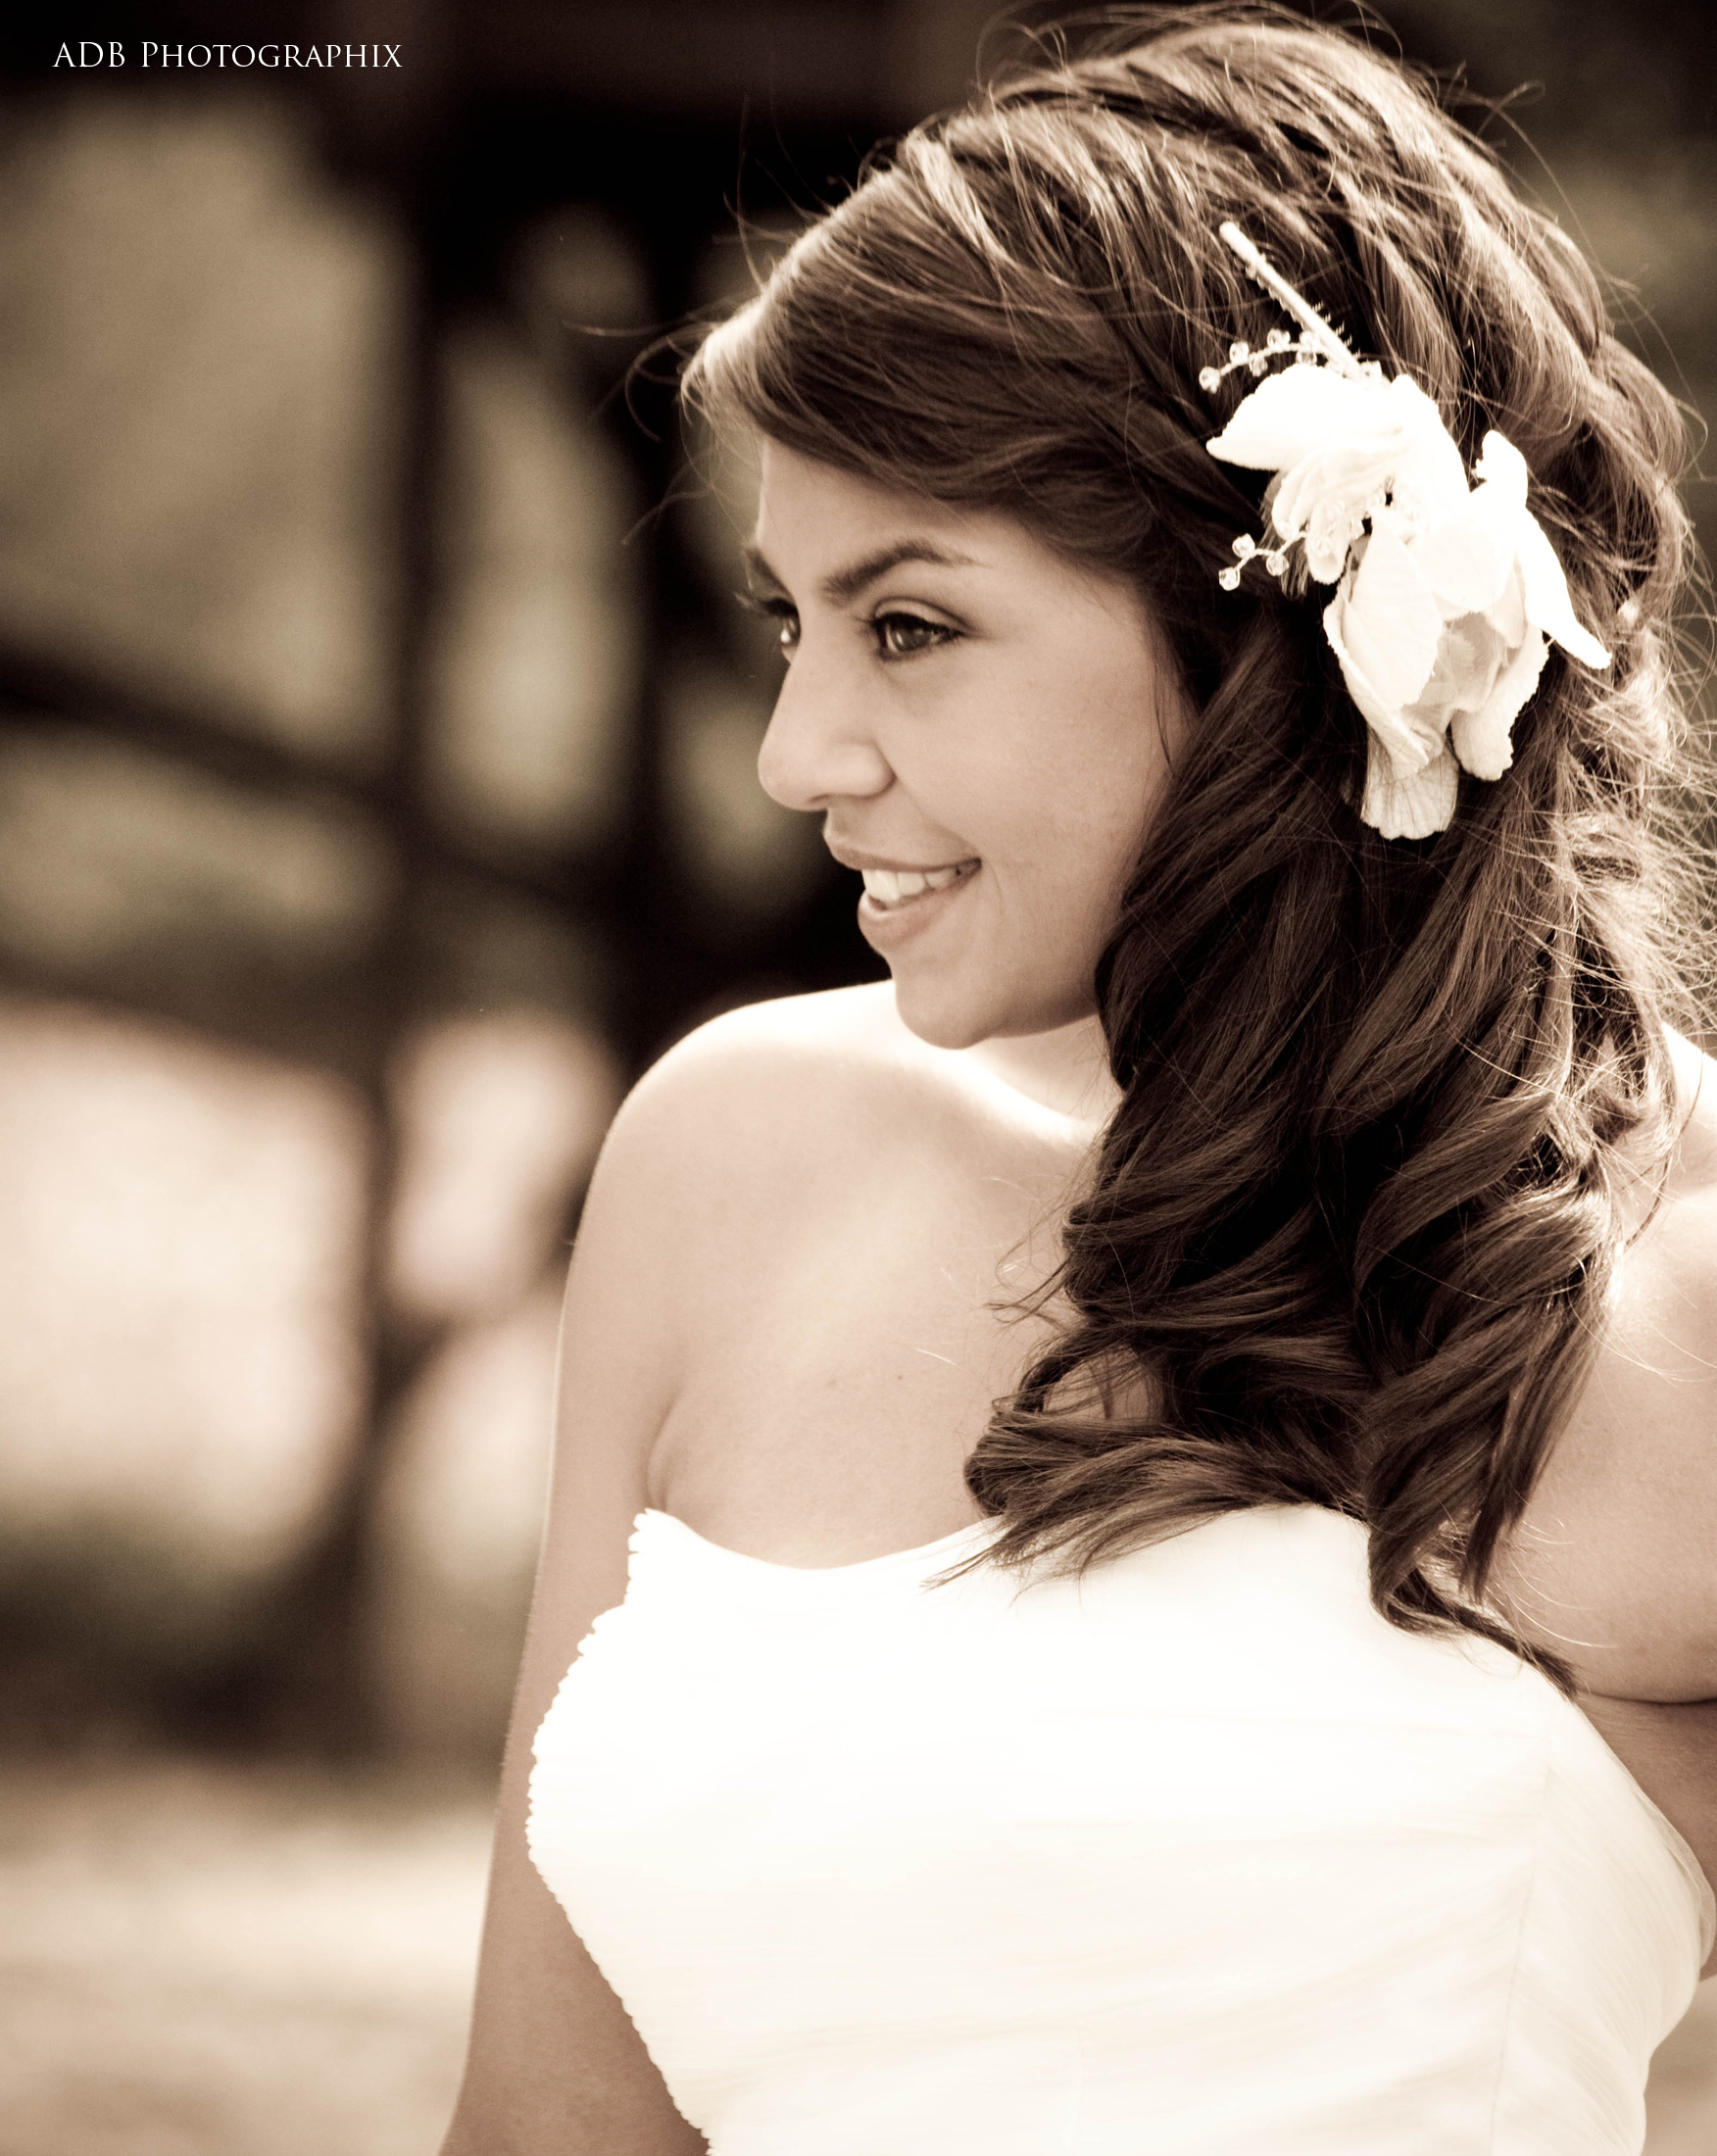 Wedding hairstyles palm beach Ceremony shoes bride rings hairstyles groom click share love